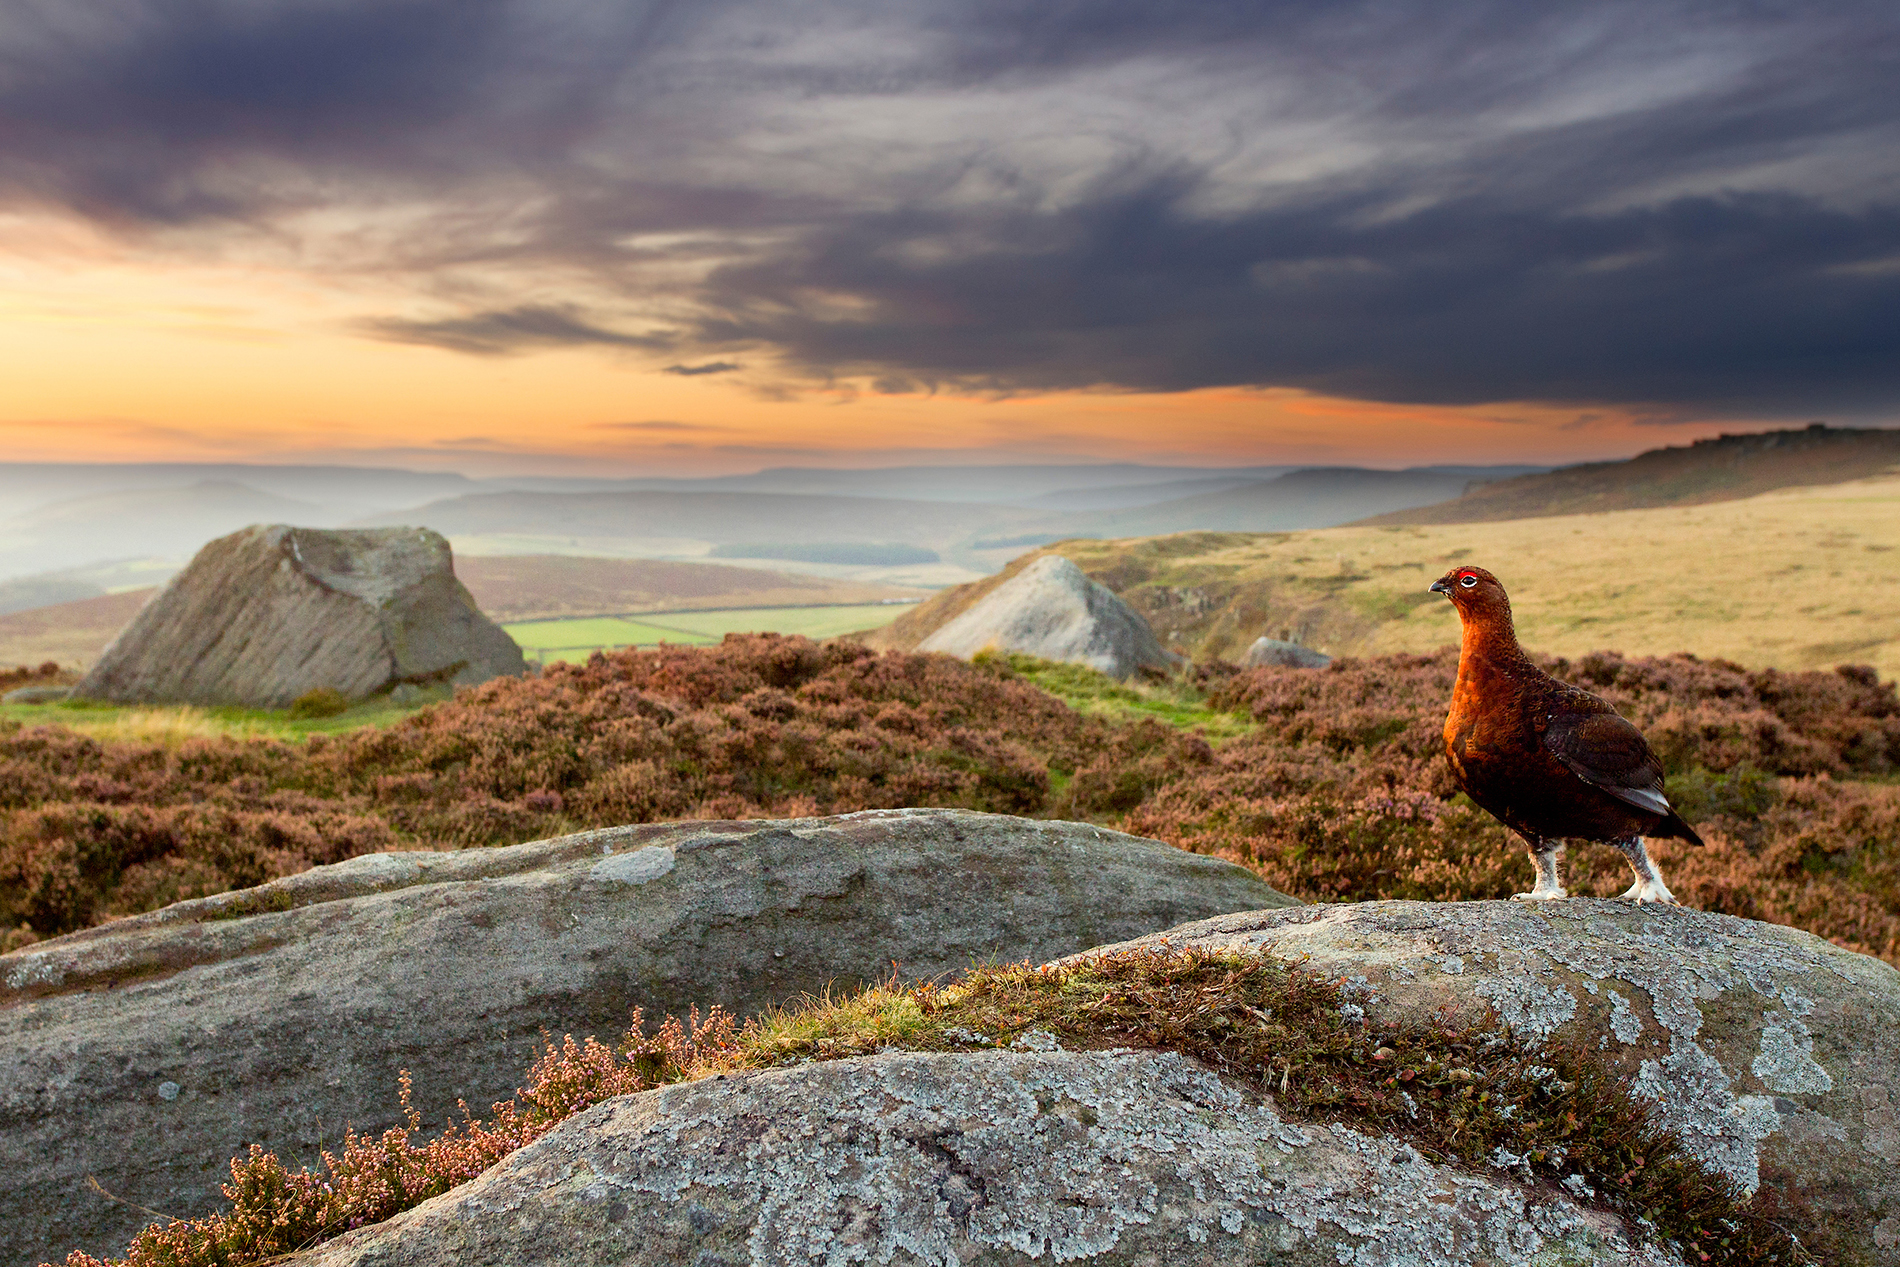 Red grouse in moorland landscape